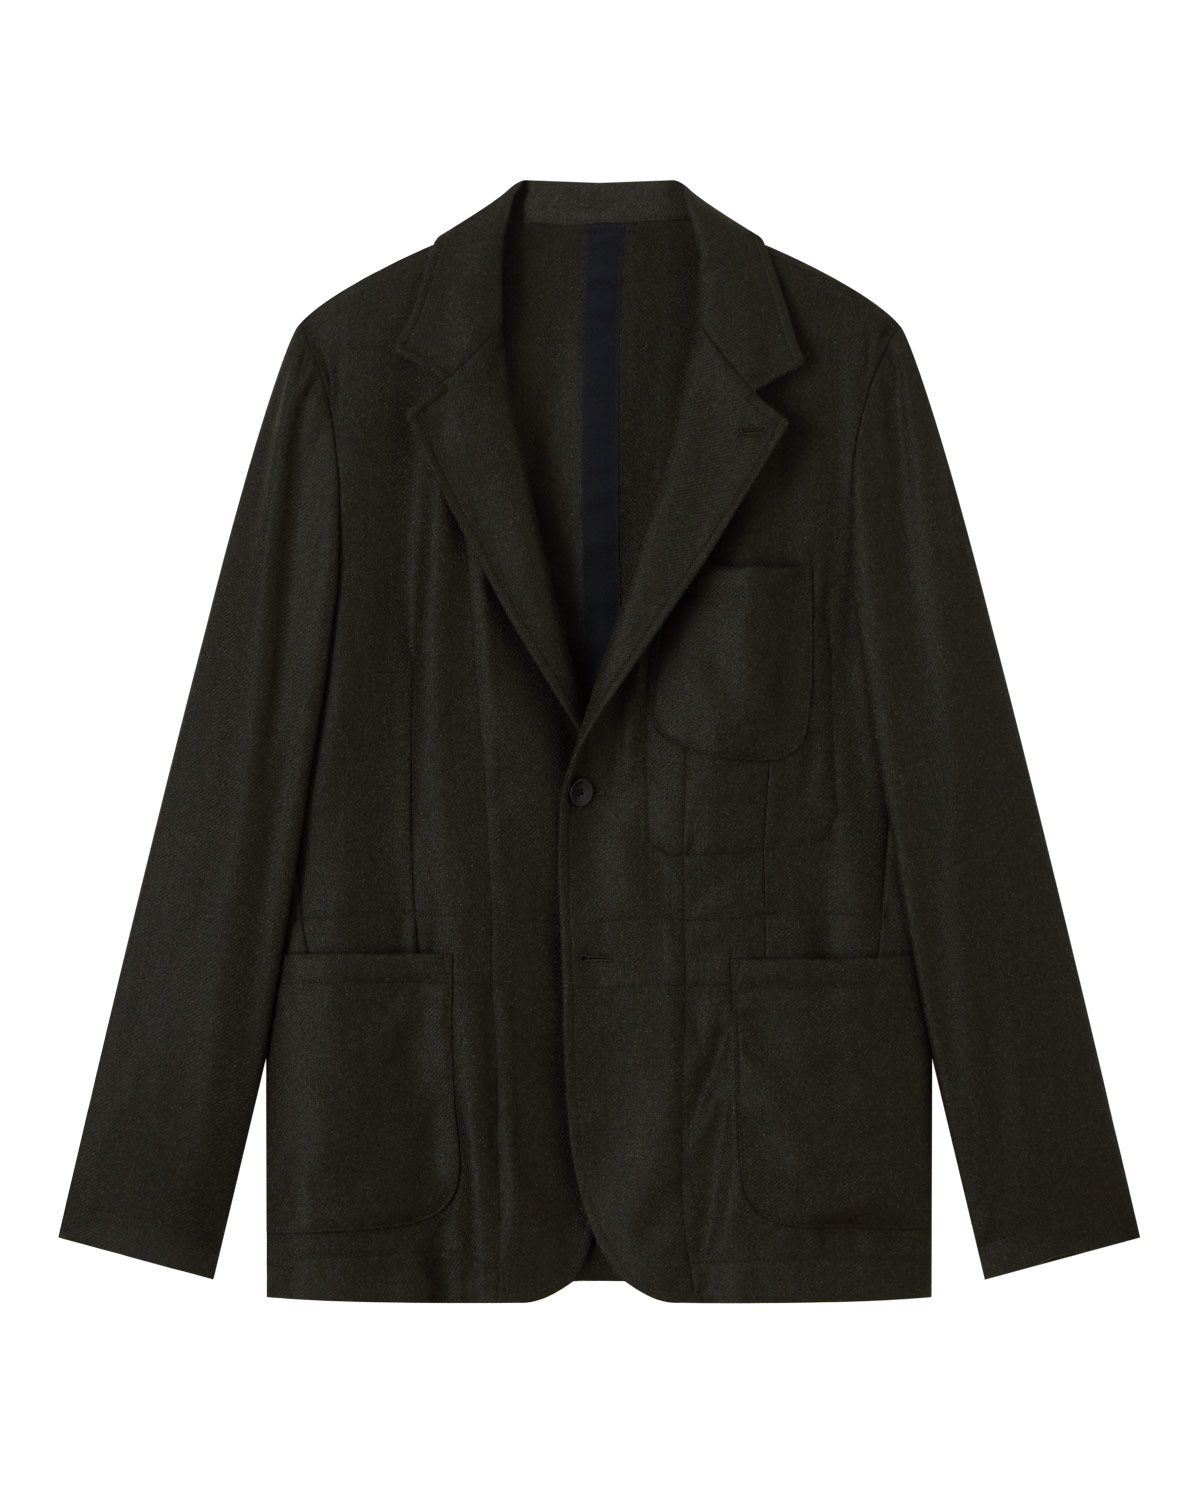 Hockney Cashmere Jacket